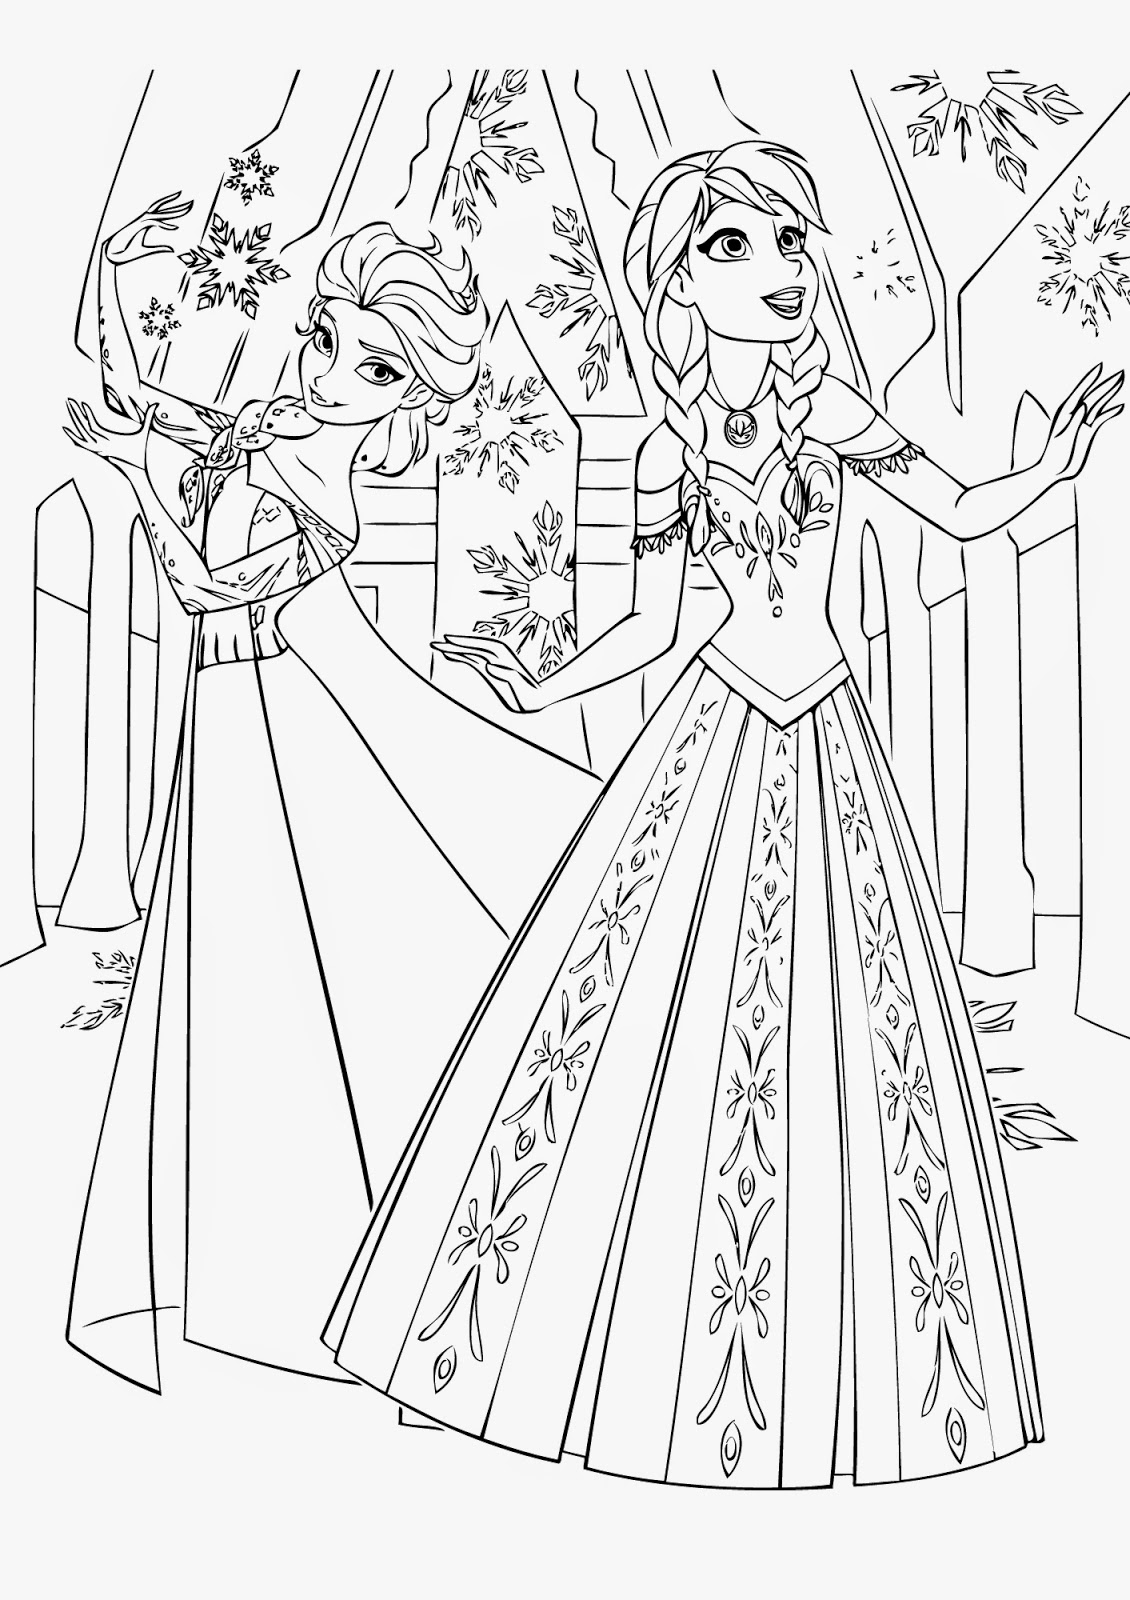 Find 16 Awesome Frozen Coloring Pages To Print Instant Printable Coloring Pages For Frozen Free